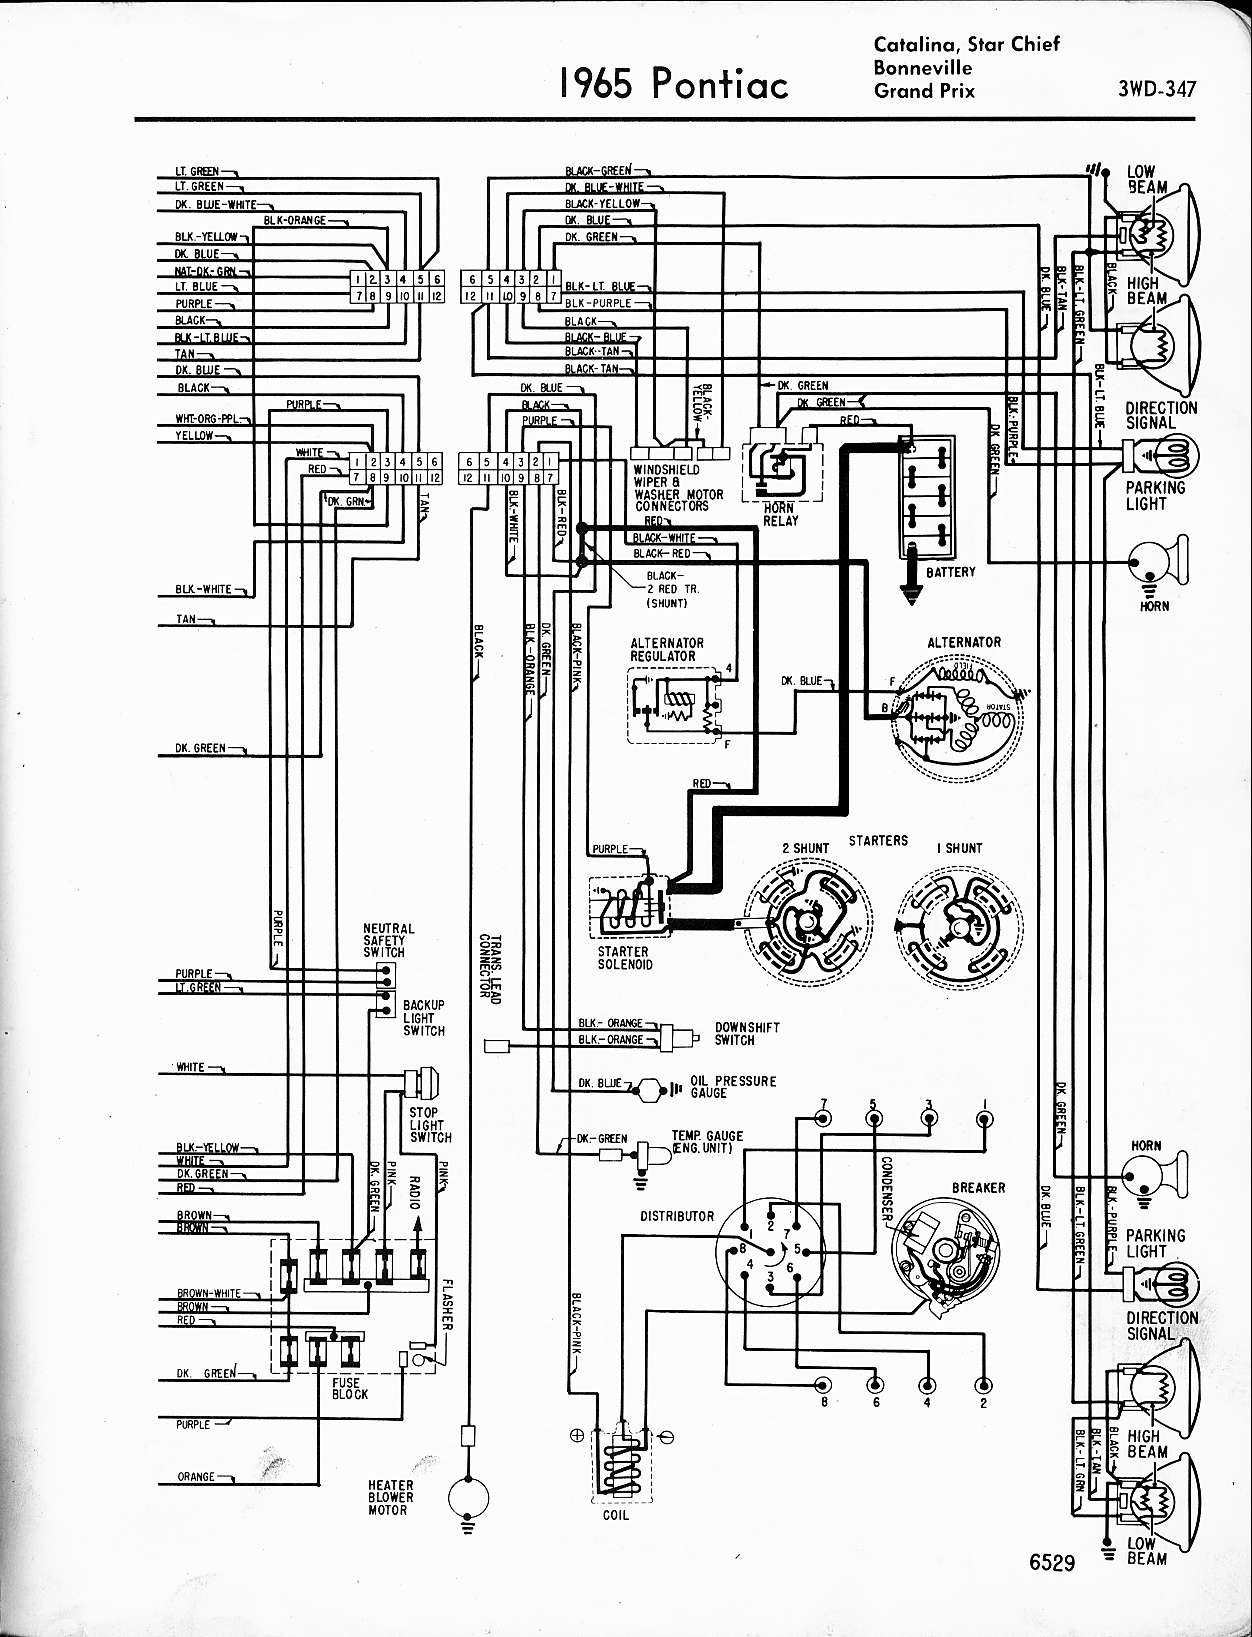 MWire5765 347 pontiac wiring diagrams pontiac grand prix wiring diagrams \u2022 free 1965 pontiac gto wiring diagram at bayanpartner.co